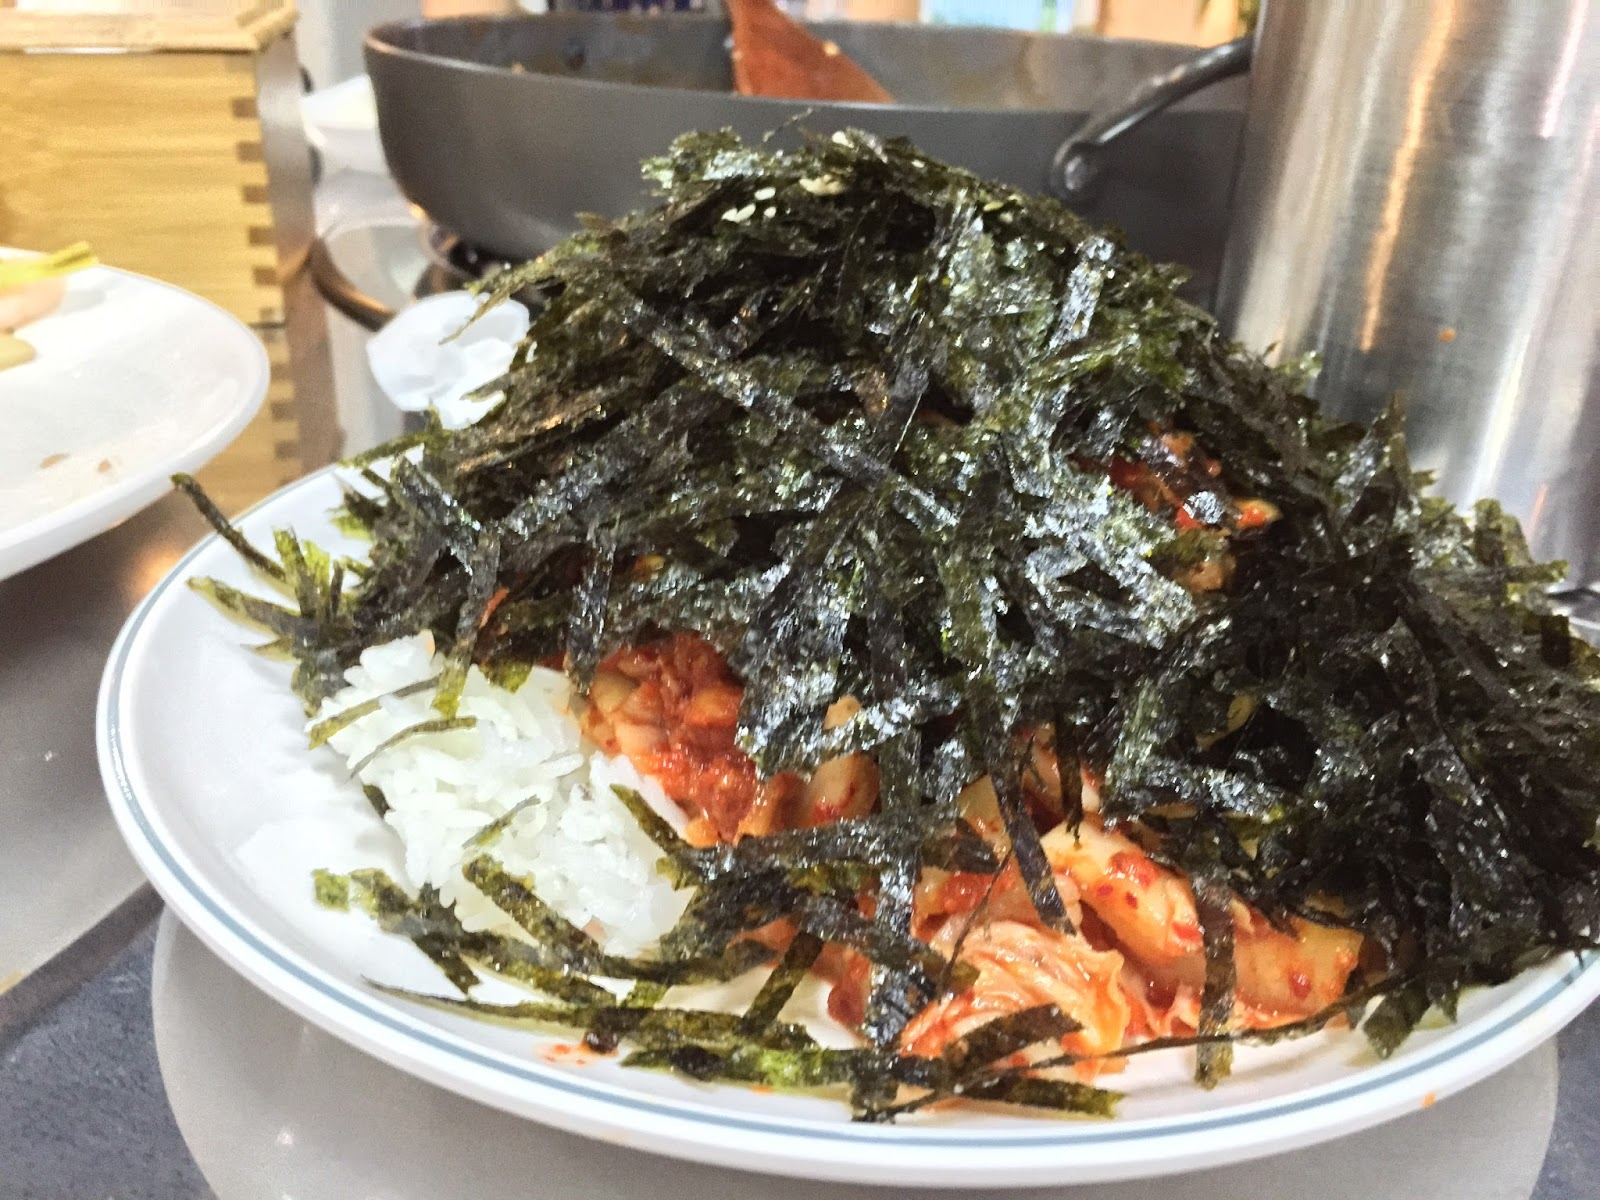 Yorijori Seaweed Fried Rice